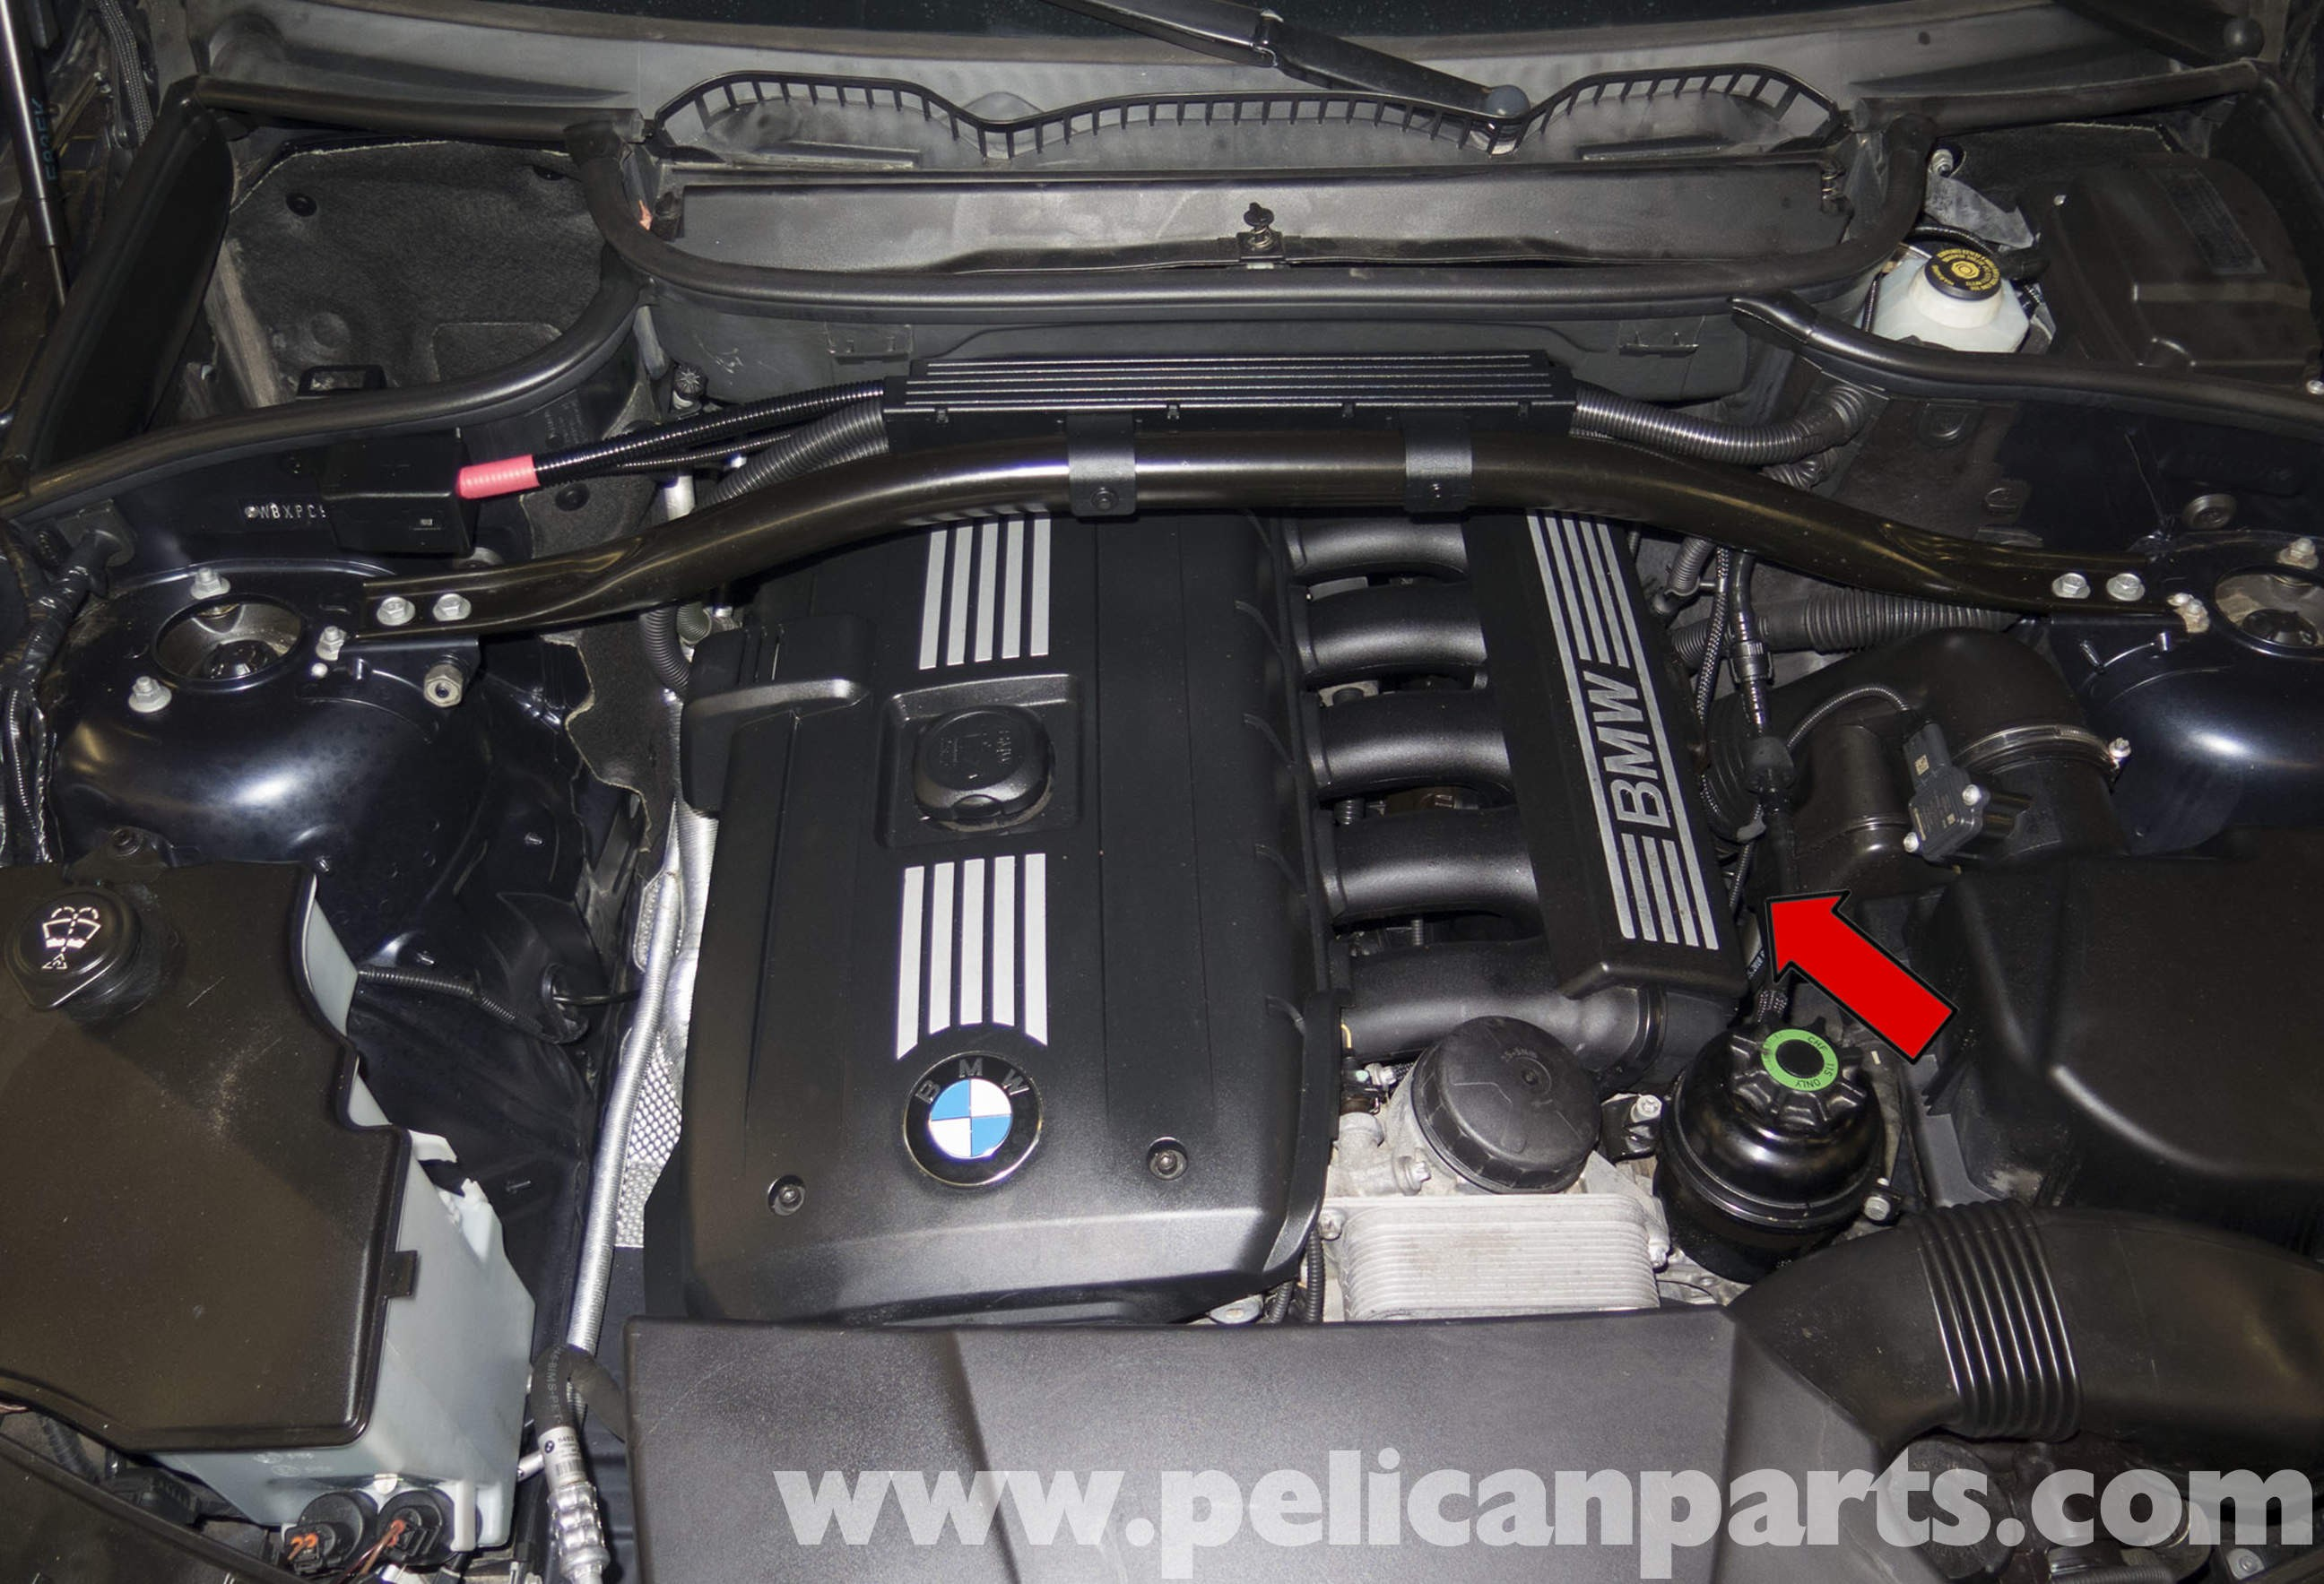 Throttle Valve Diagram Pelican Technical Article Bmw X3 N52 Engine Throttle Body Replacing Of Throttle Valve Diagram